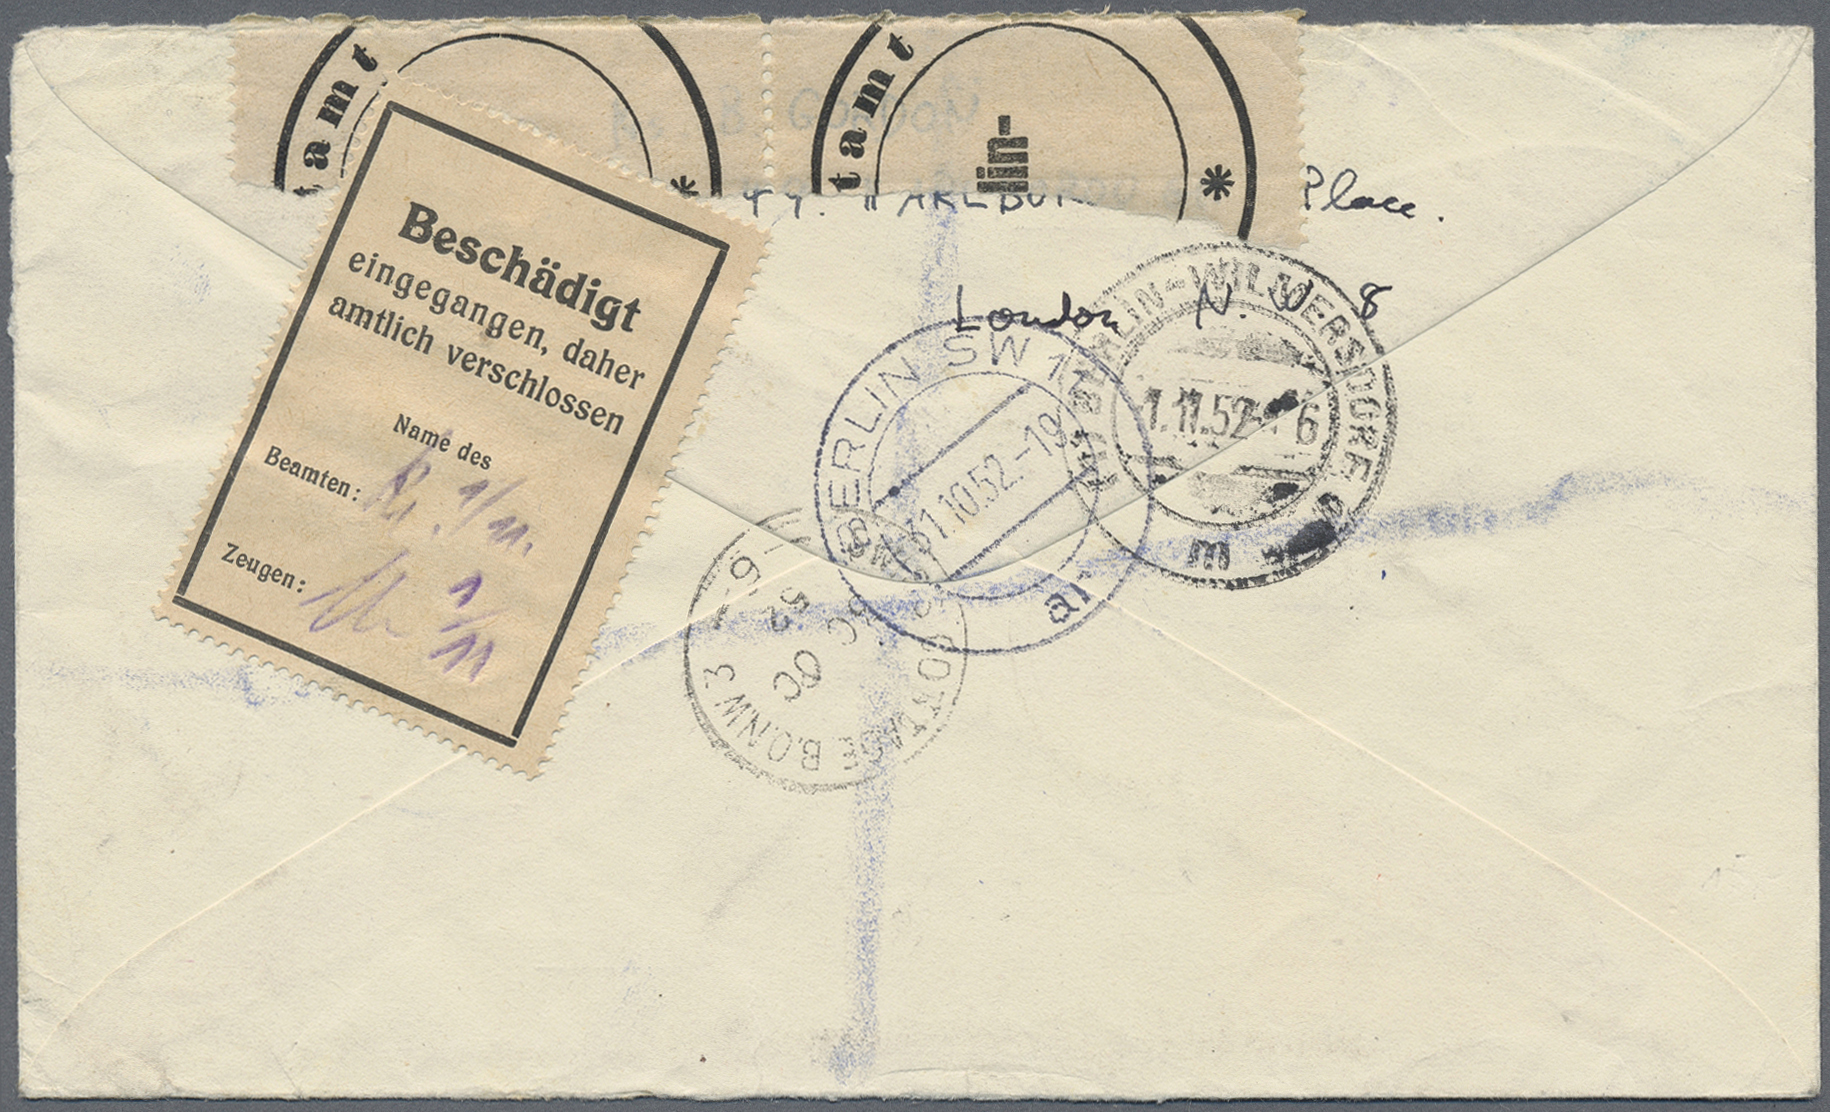 Lot 24859 - Berlin - Besonderheiten  -  Auktionshaus Christoph Gärtner GmbH & Co. KG Single lots Germany + Picture Postcards. Auction #39 Day 5